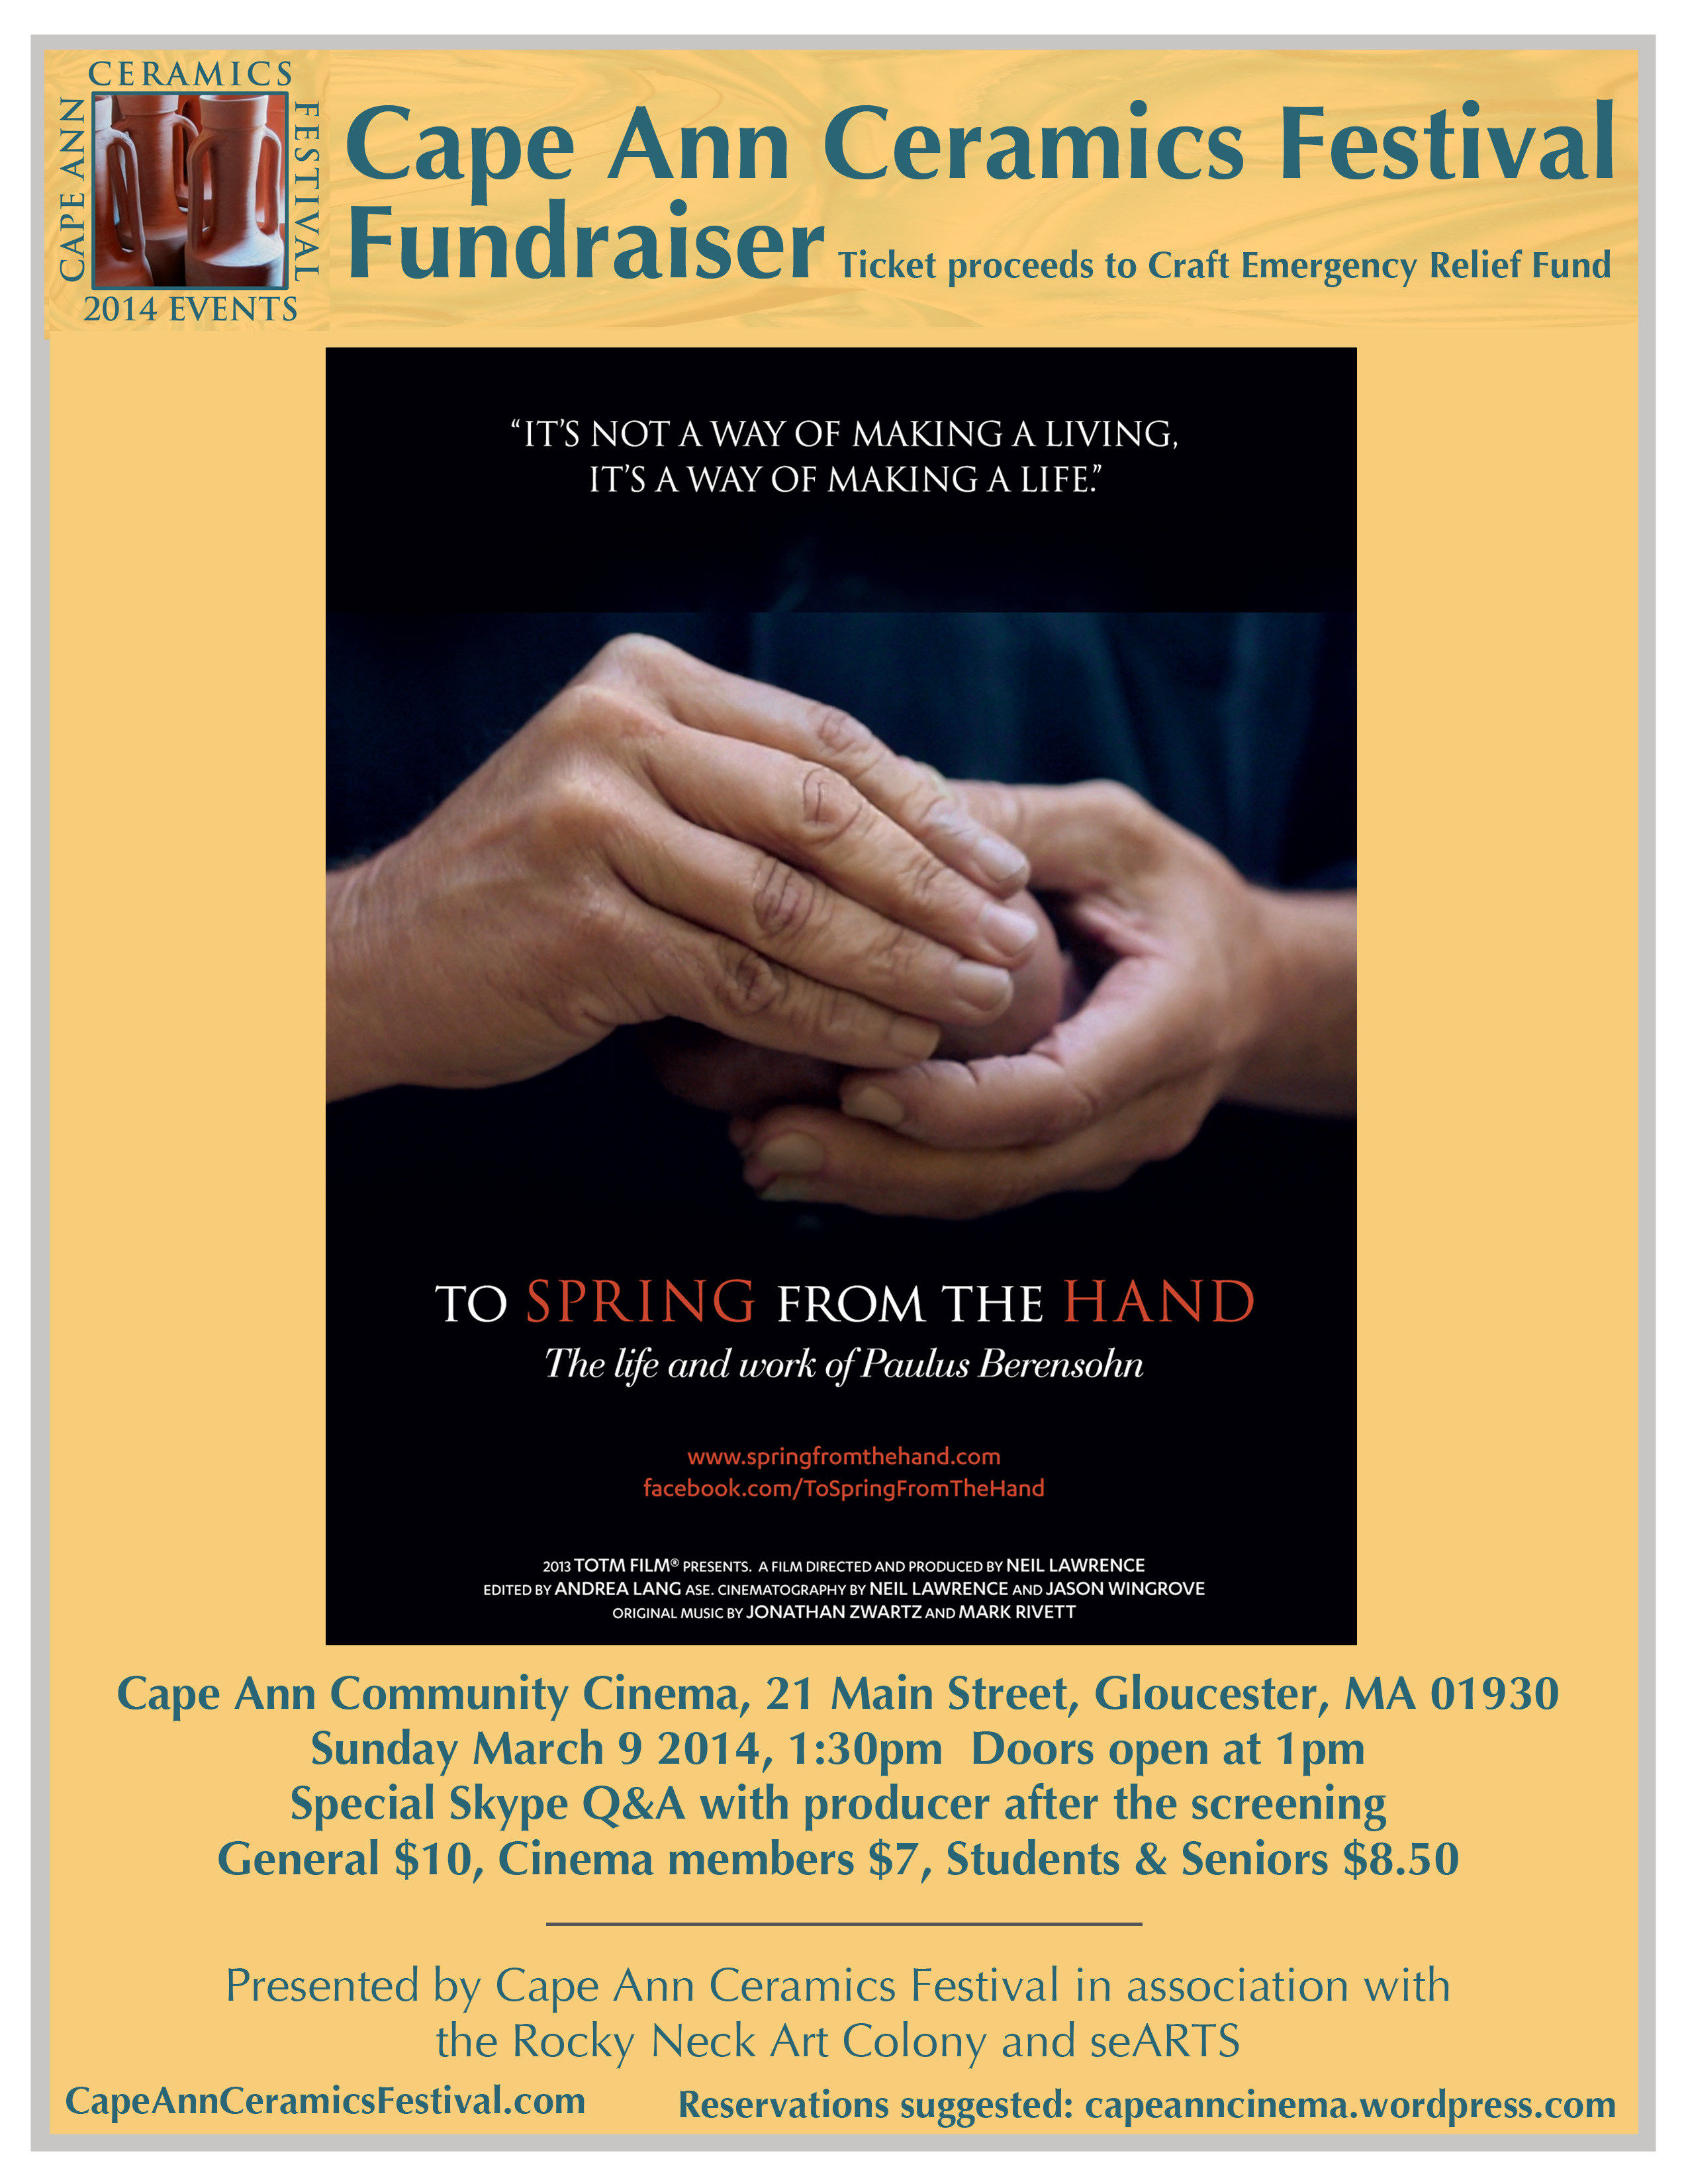 Click for more info on this special film event.